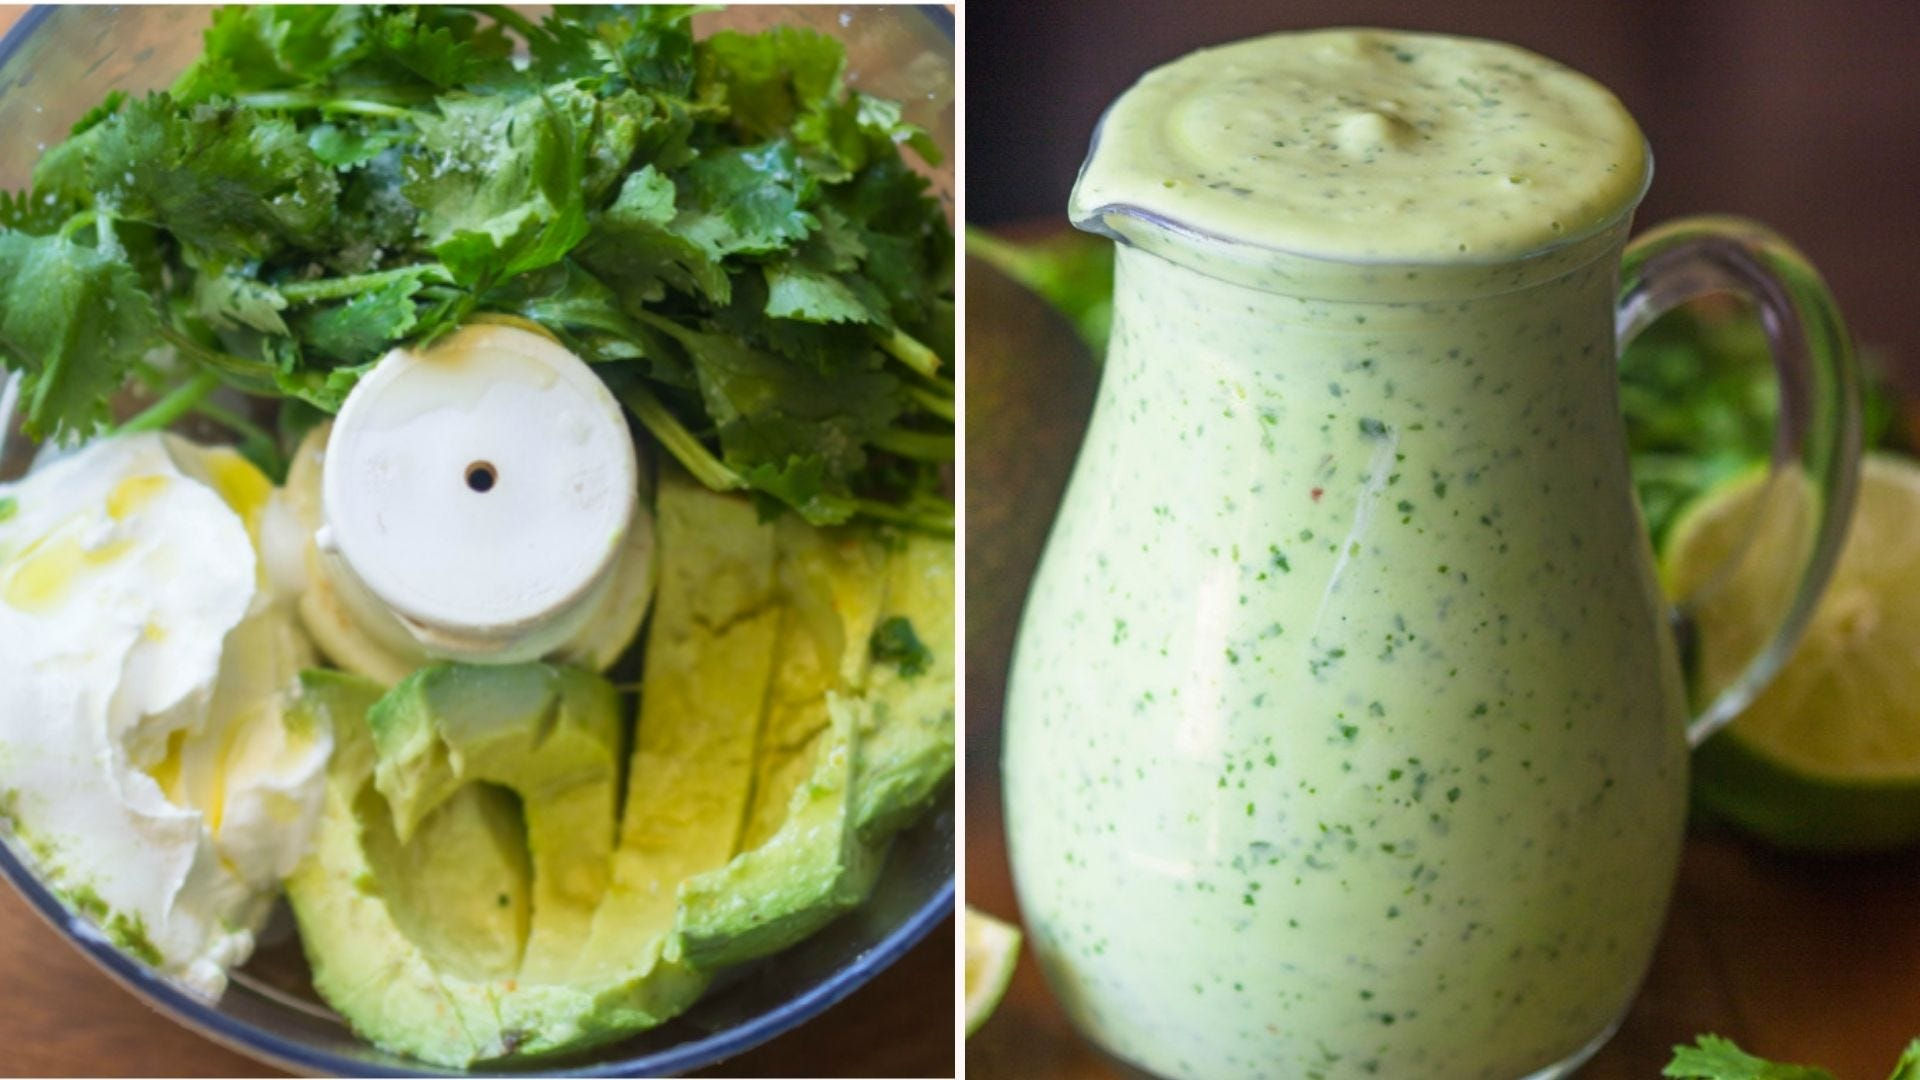 The ingredients in a food processor, and a glass pitcher full of avocado cilantro dressing.